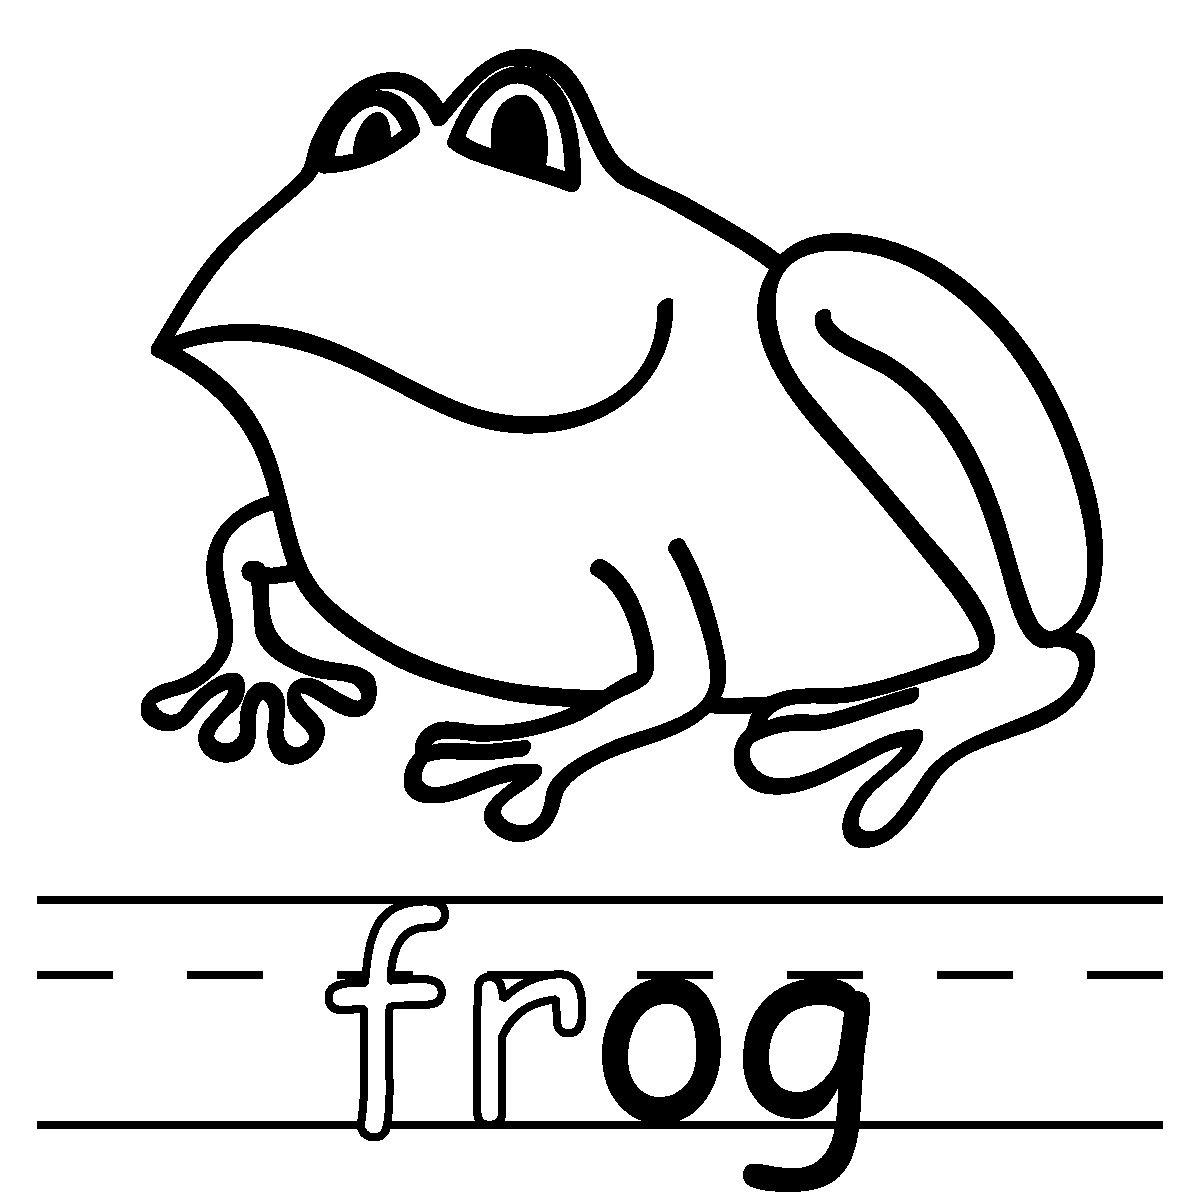 Frog  black and white tree frog clip art black and white free clipart